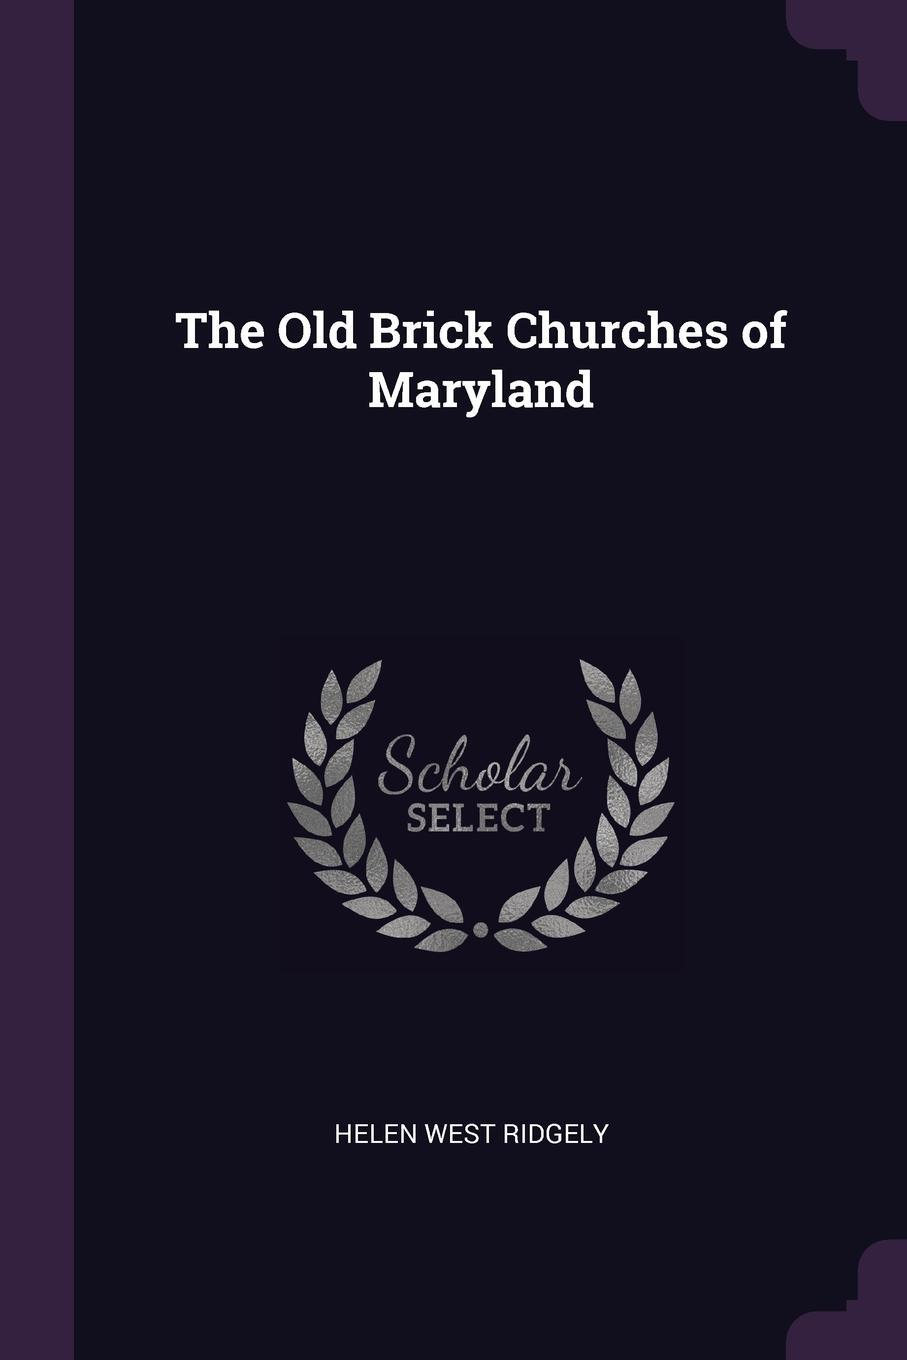 Helen West Ridgely. The Old Brick Churches of Maryland